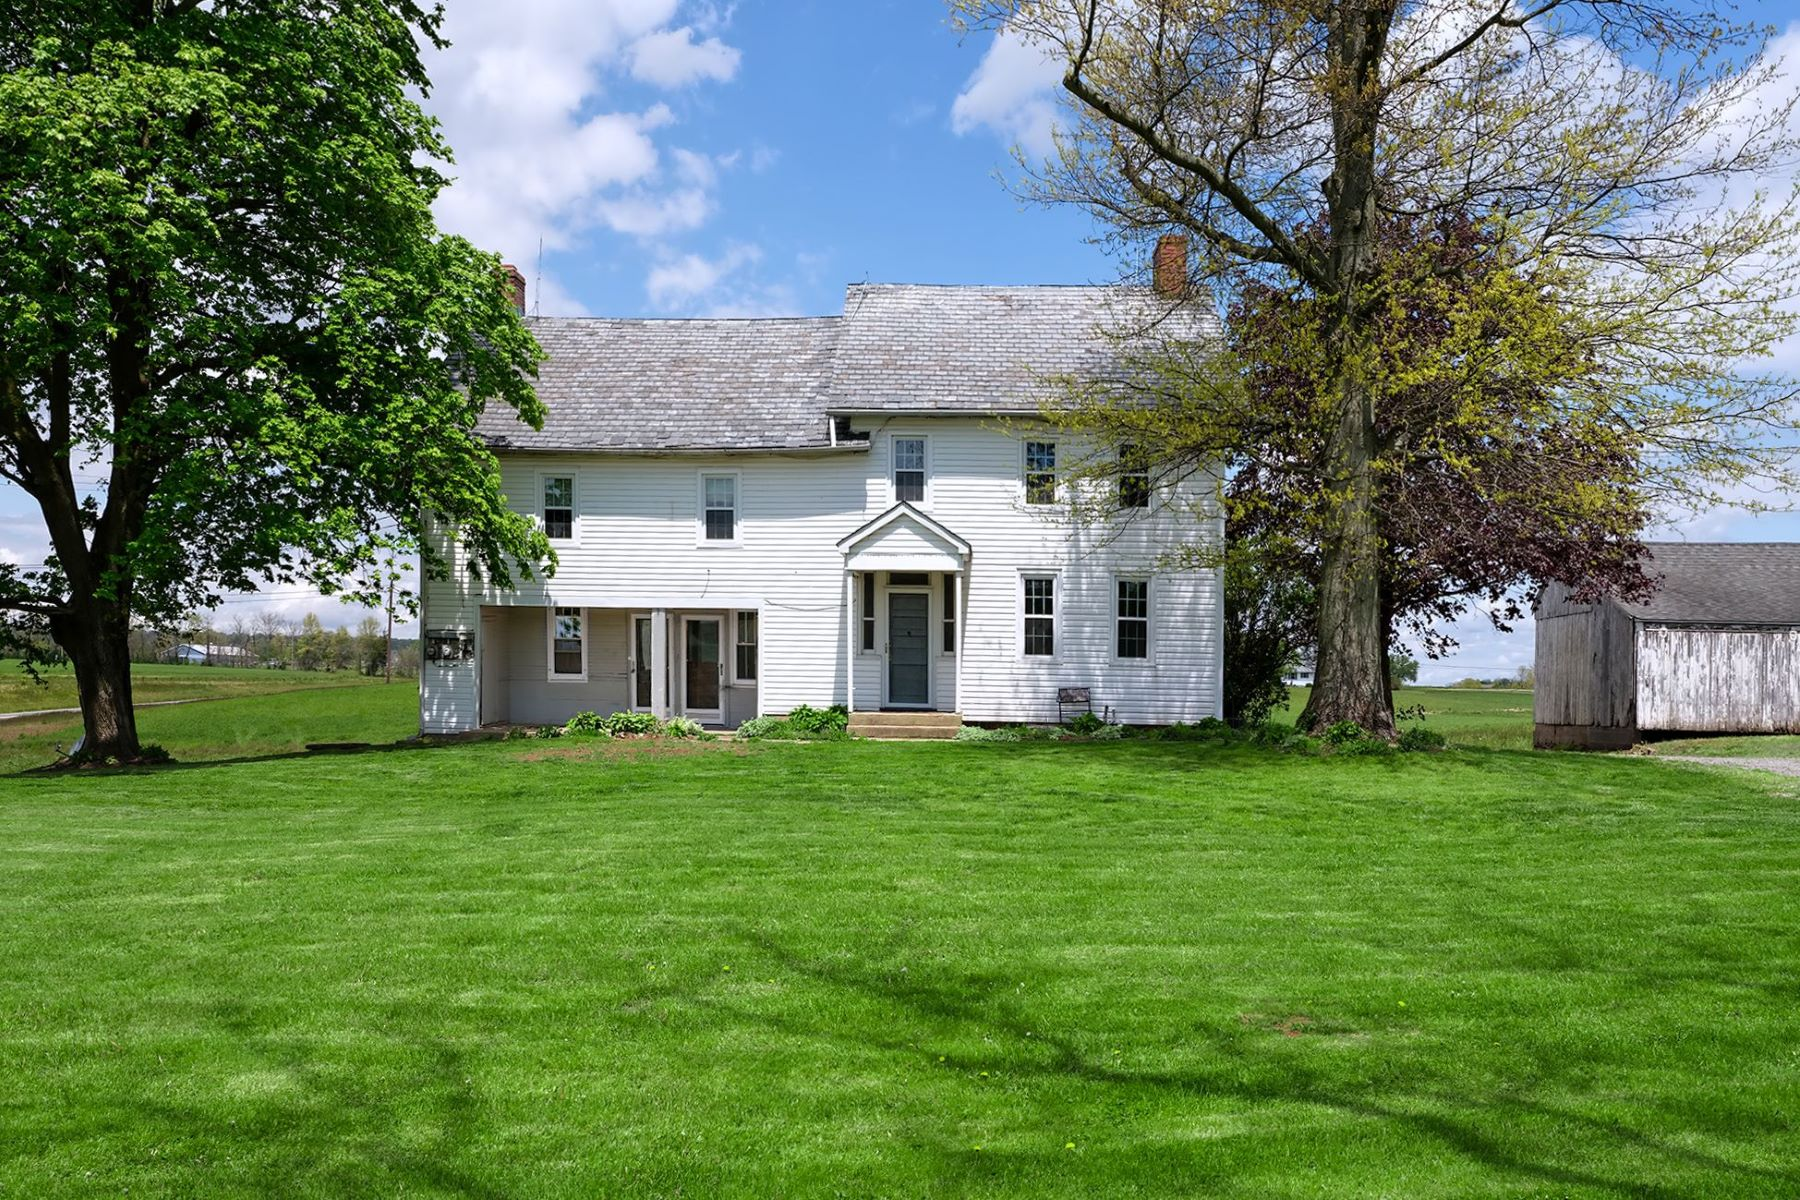 Single Family Homes for Sale at Fresh Air, Sunshine, With Room To Share 284 County Road 579, Ringoes, New Jersey 08551 United States